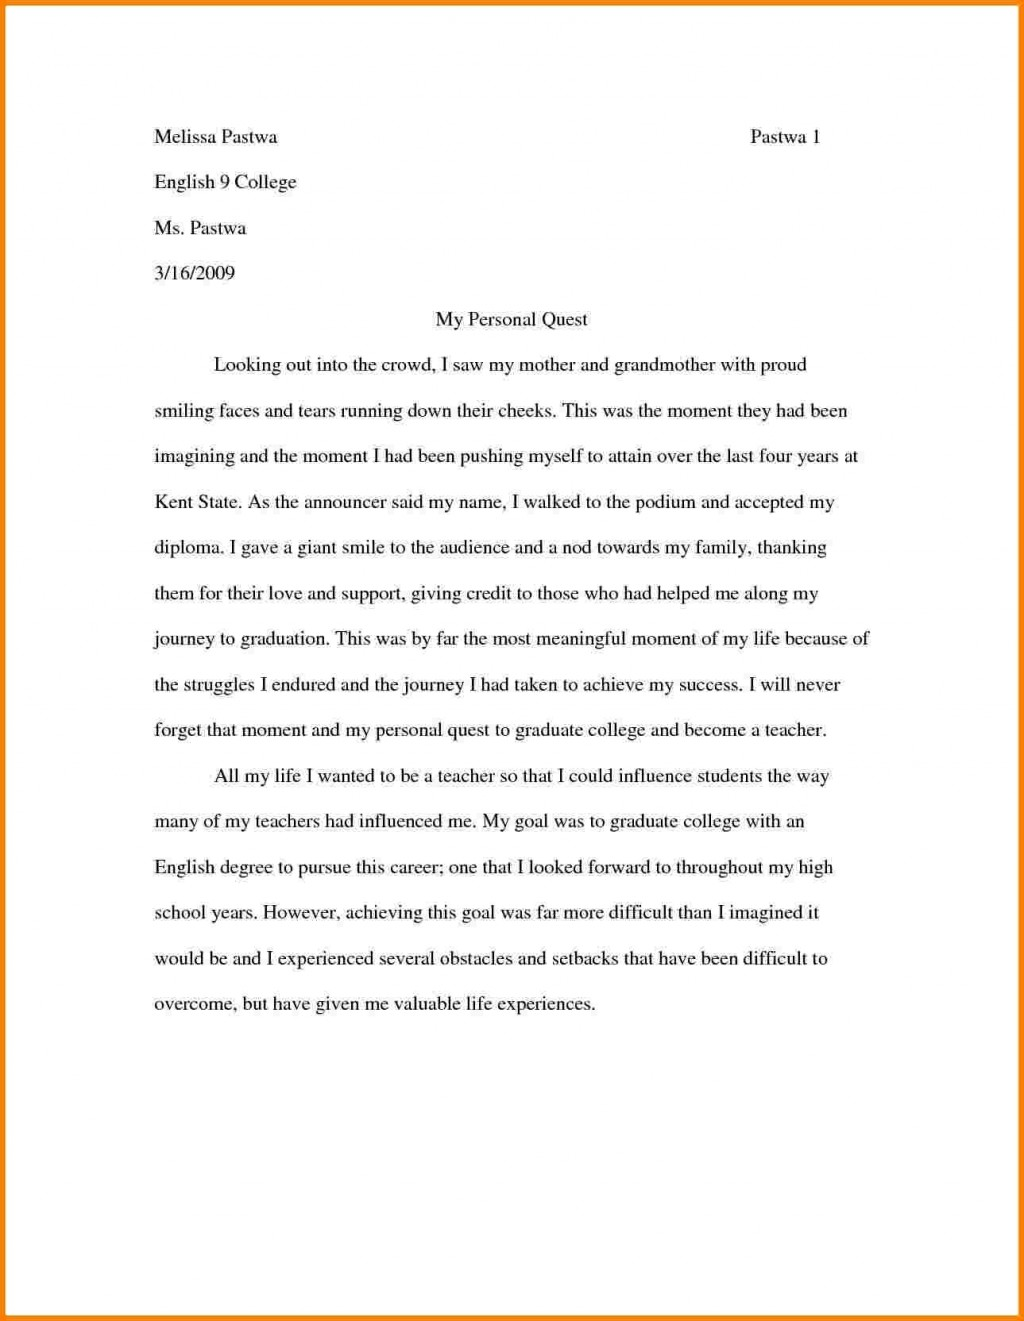 002 College Essays Essay Examples Writings And Application Example Of Philosophy Statement Case Best Frightening 2017 Texas Uc Prompts Pdf Large